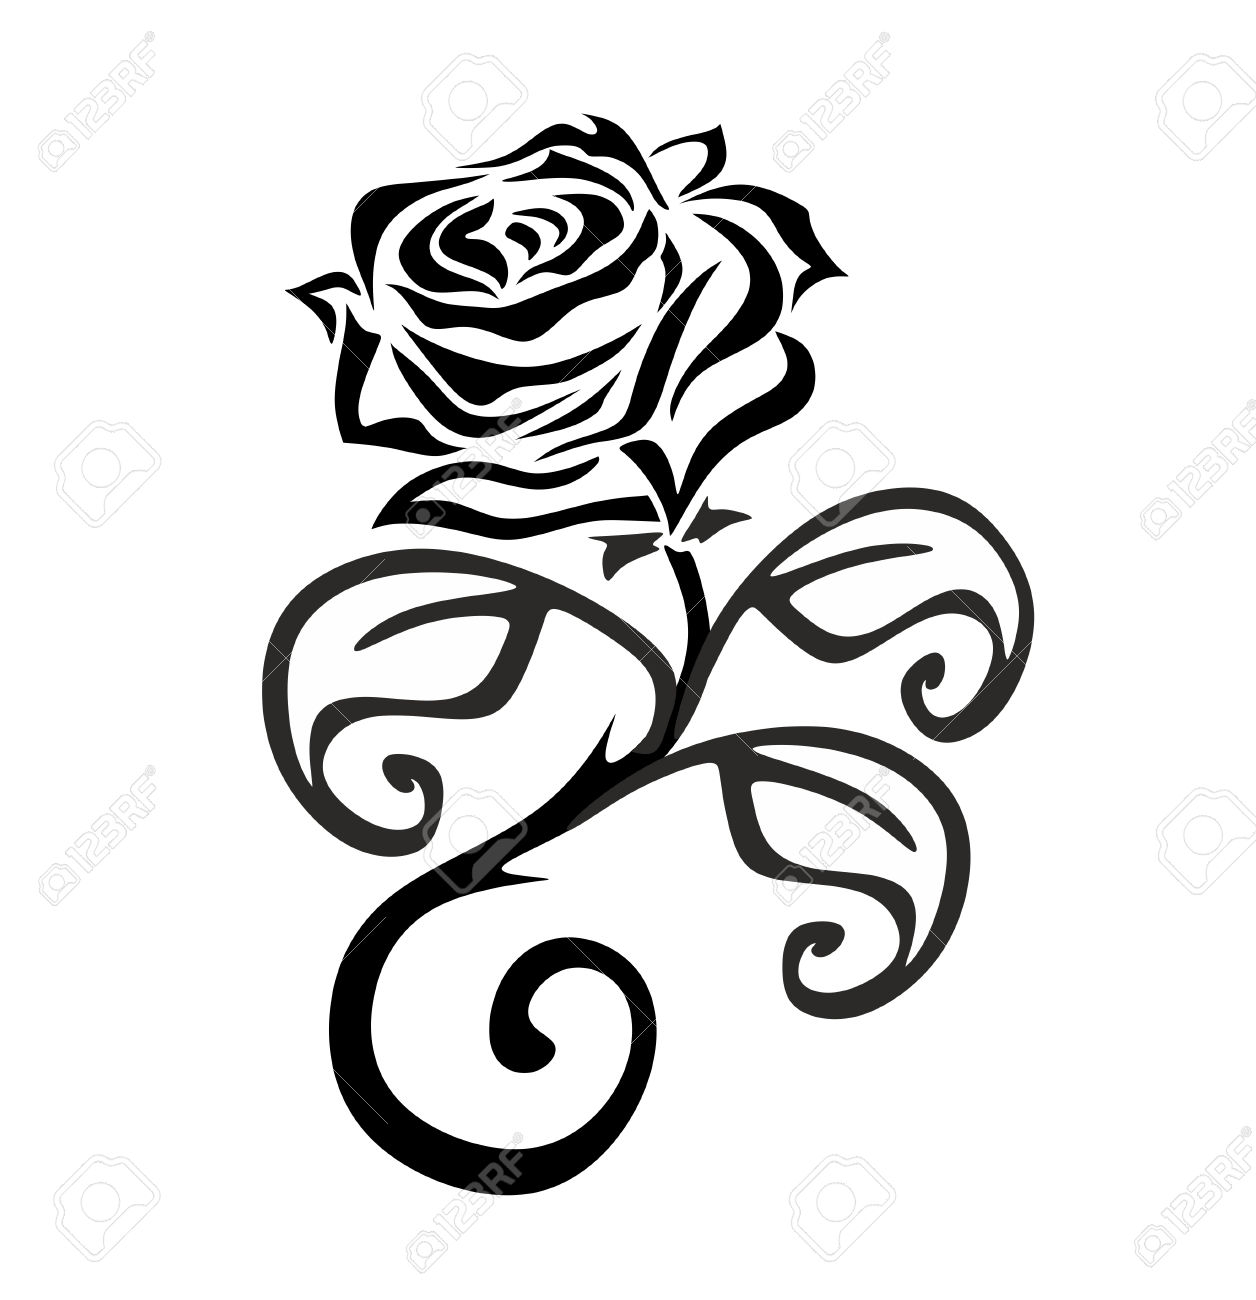 1256x1300 Black And White Flowers Simple Rose Drawing Free Border Line